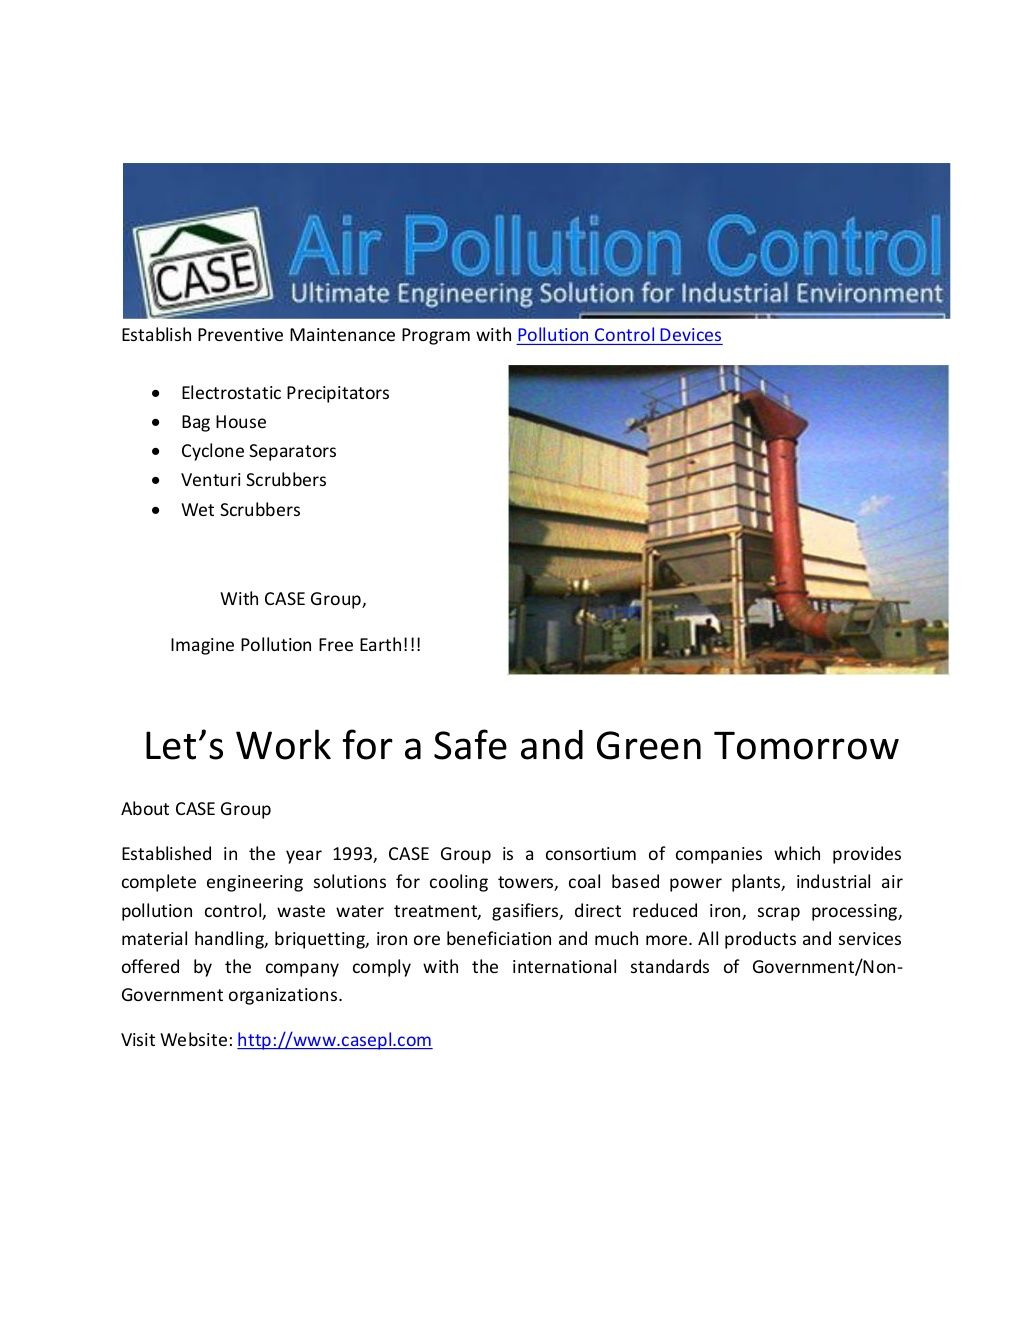 My Latest Share Air Pollution Slide Show on Slide Share